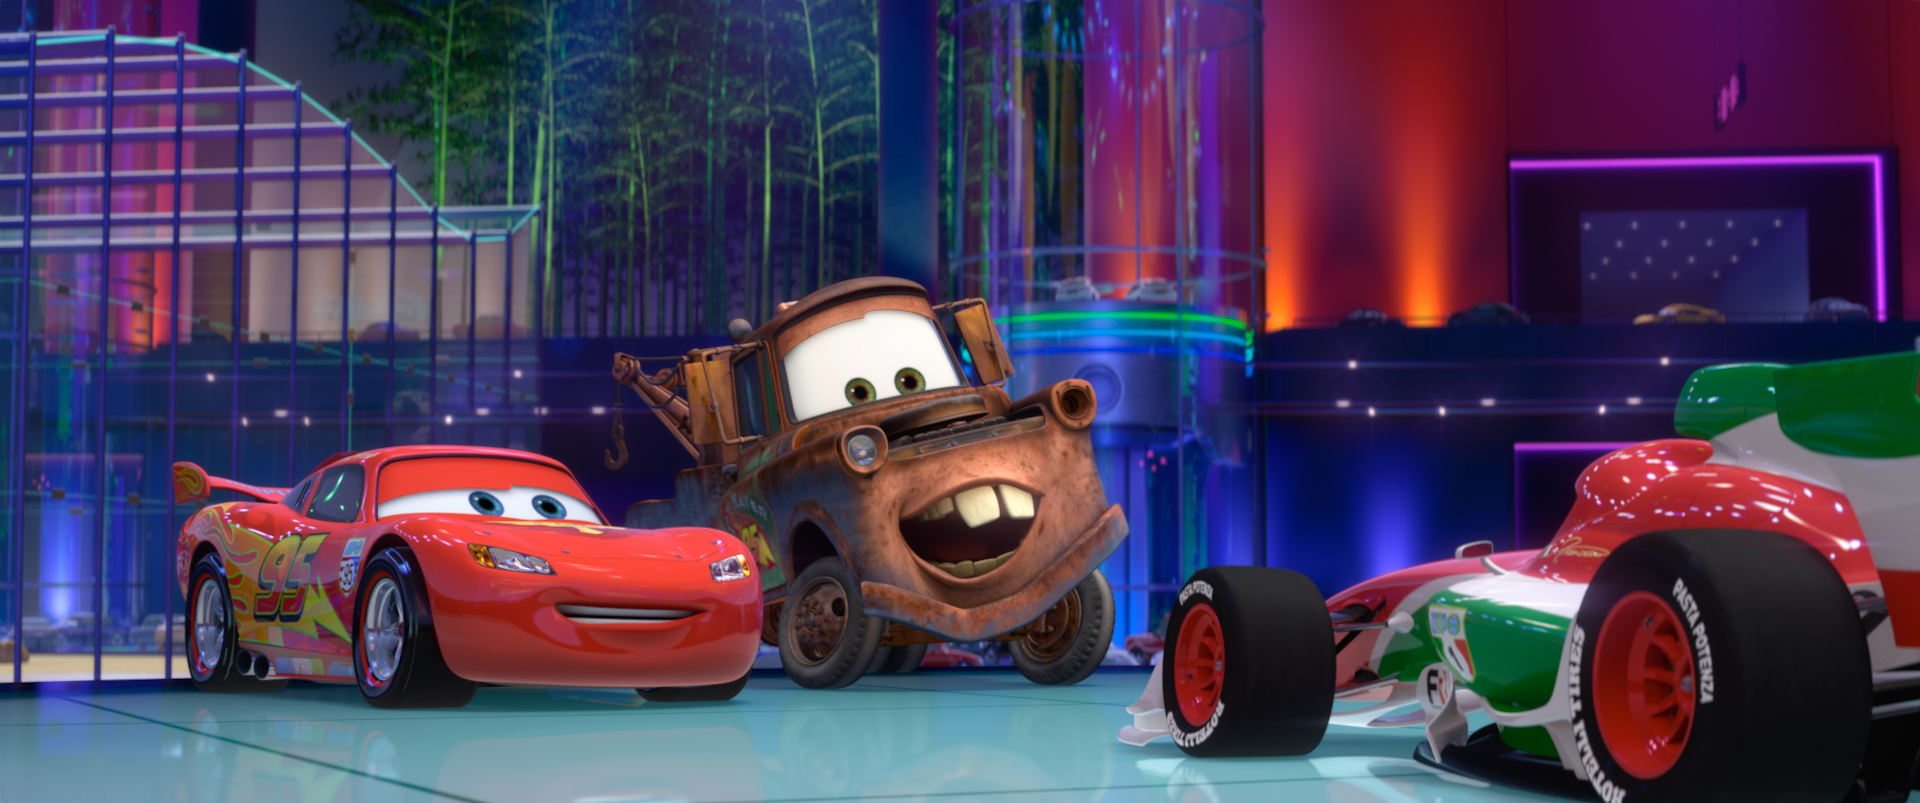 Cars 2 Grosses Estimated $68 Million On Opening Weekend (Updated)